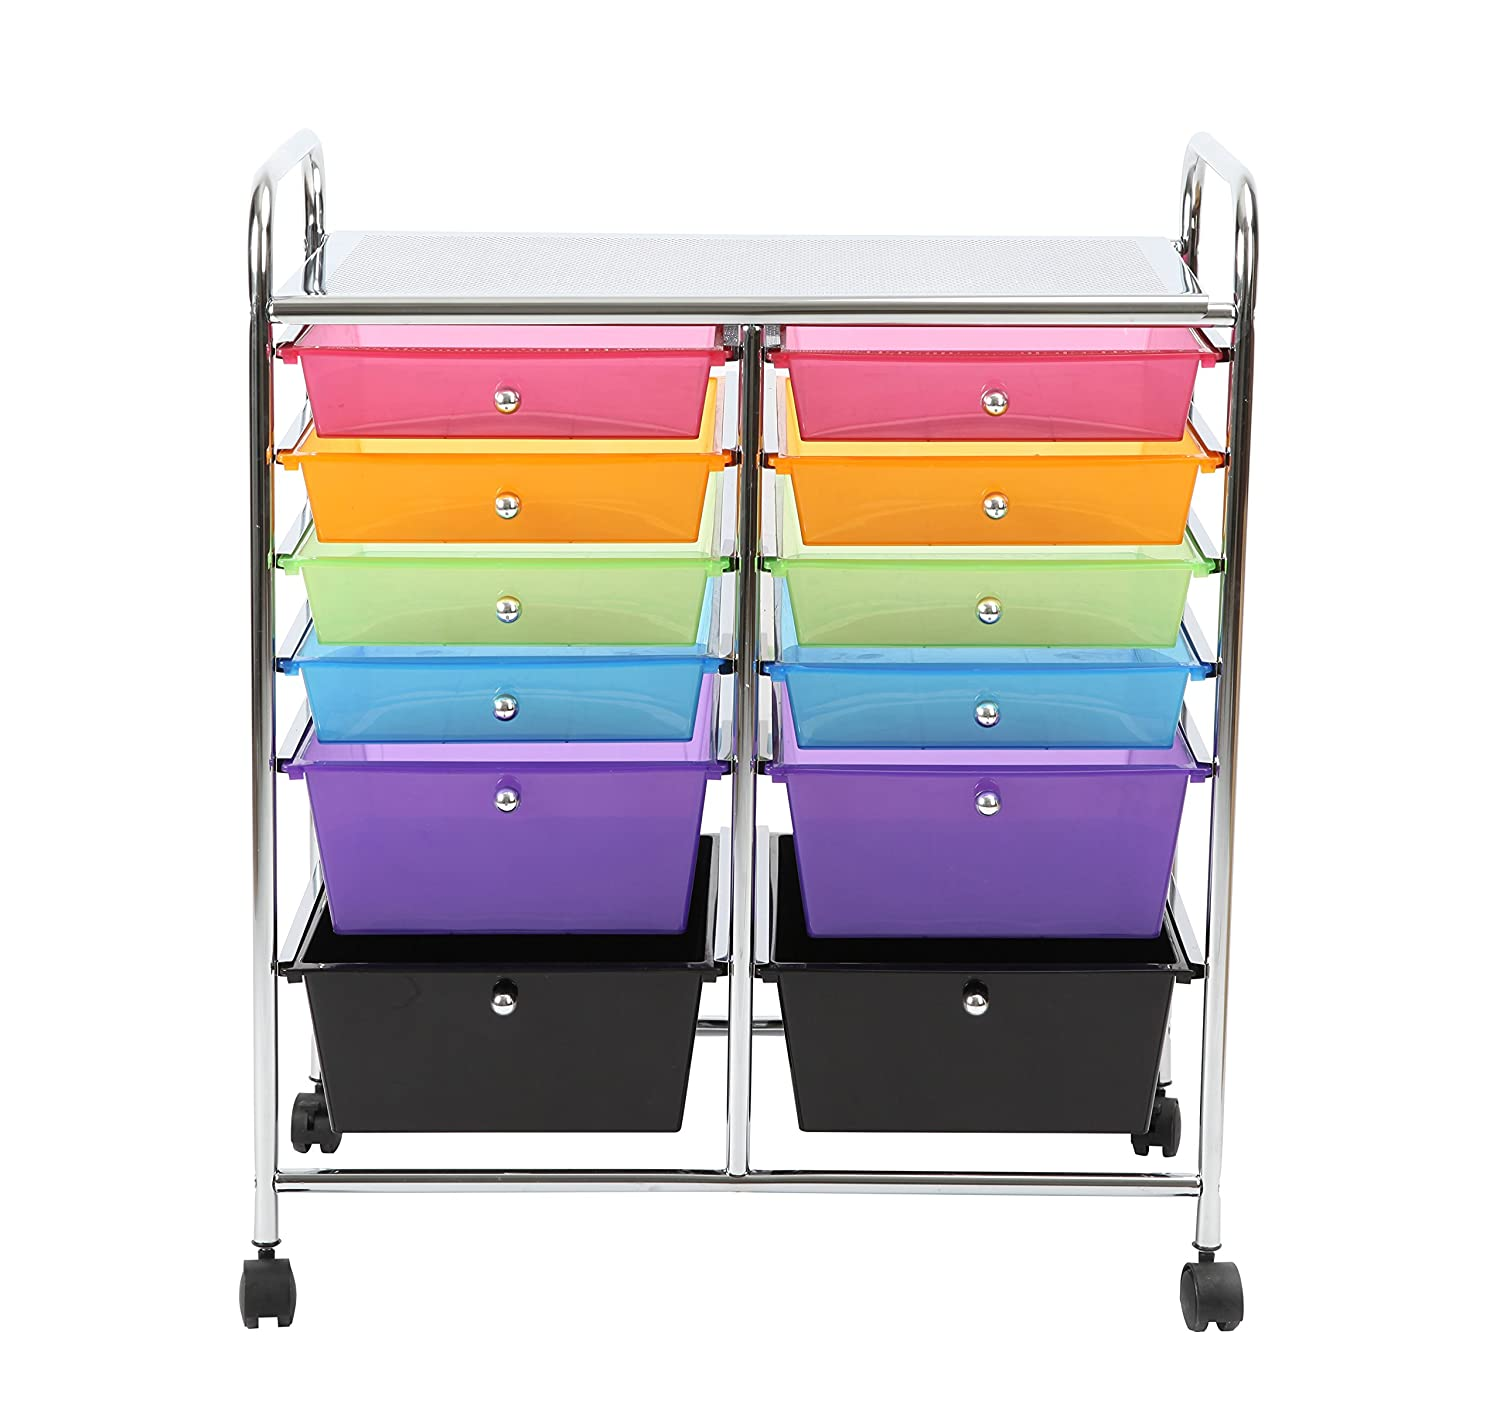 Amazon.com  Finnhomy 12-Drawer Plastic Portable Mobile Organizer Rainbow Multi-Purpose Utility Double Rolling Storage Cart Bright Chrome Metal Frame and ...  sc 1 st  Amazon.com & Amazon.com : Finnhomy 12-Drawer Plastic Portable Mobile Organizer ...